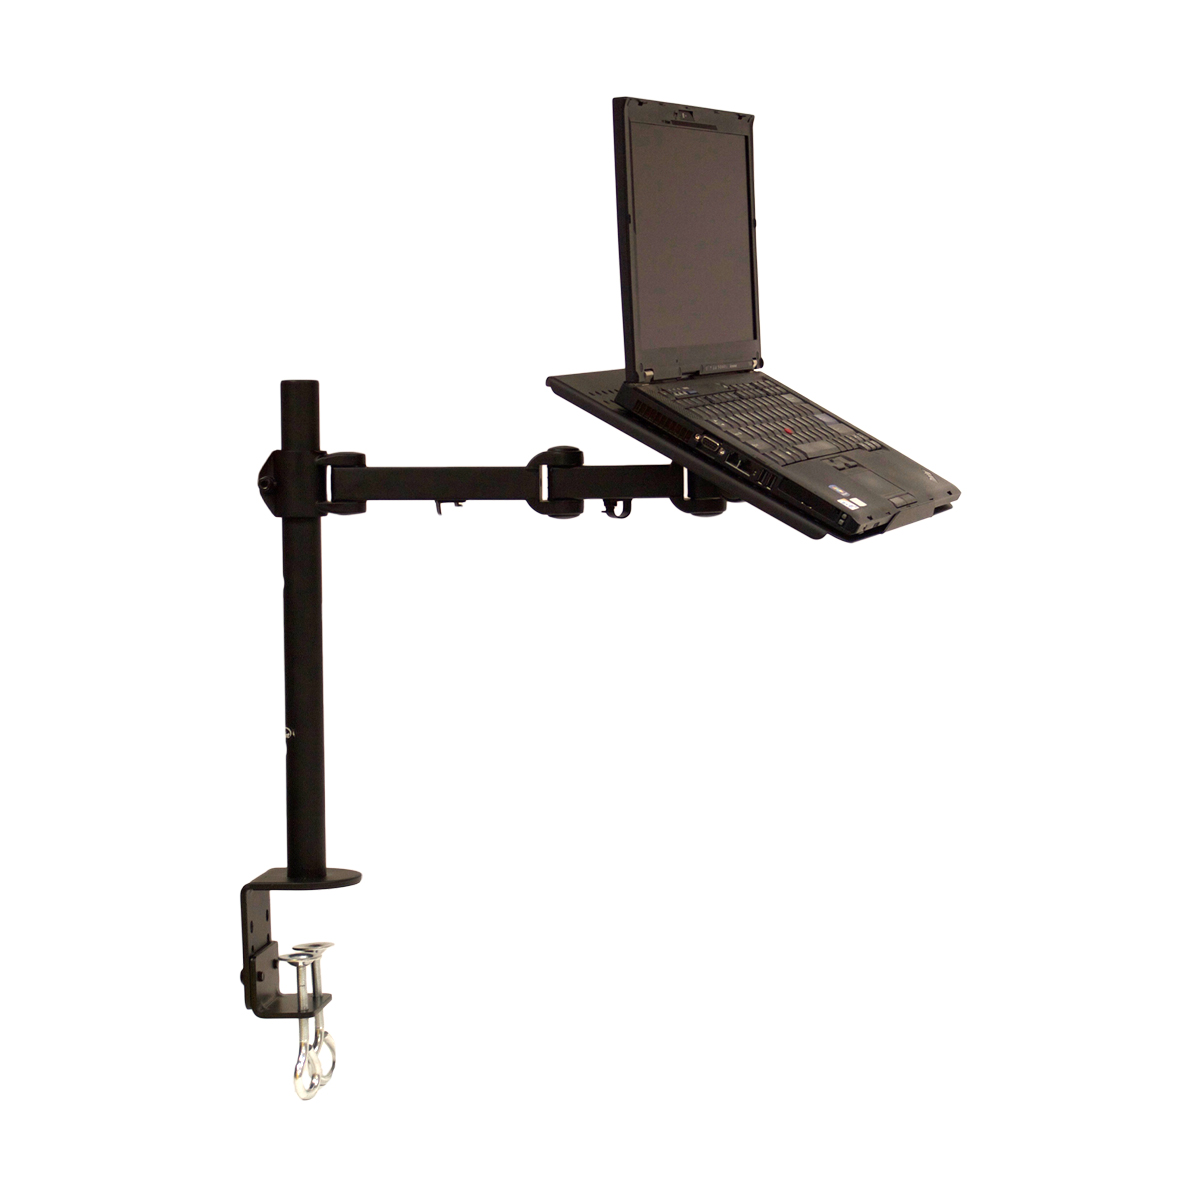 Extendable C Clamp : Laptop notebook stand desk desktop c clamp mount fully